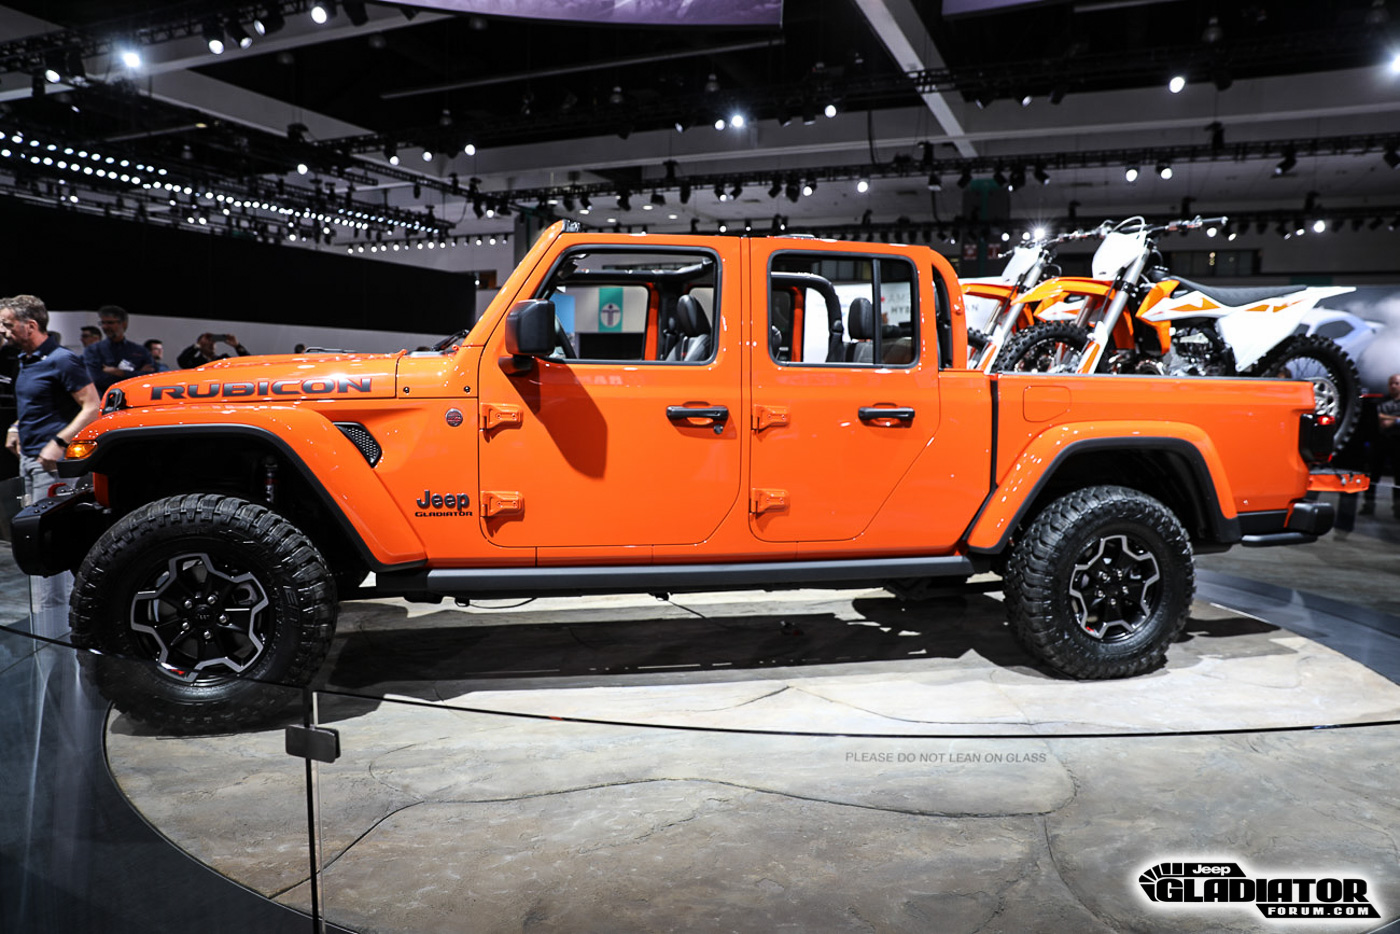 What We Saw And Learned About The Jeep Gladiator At Its